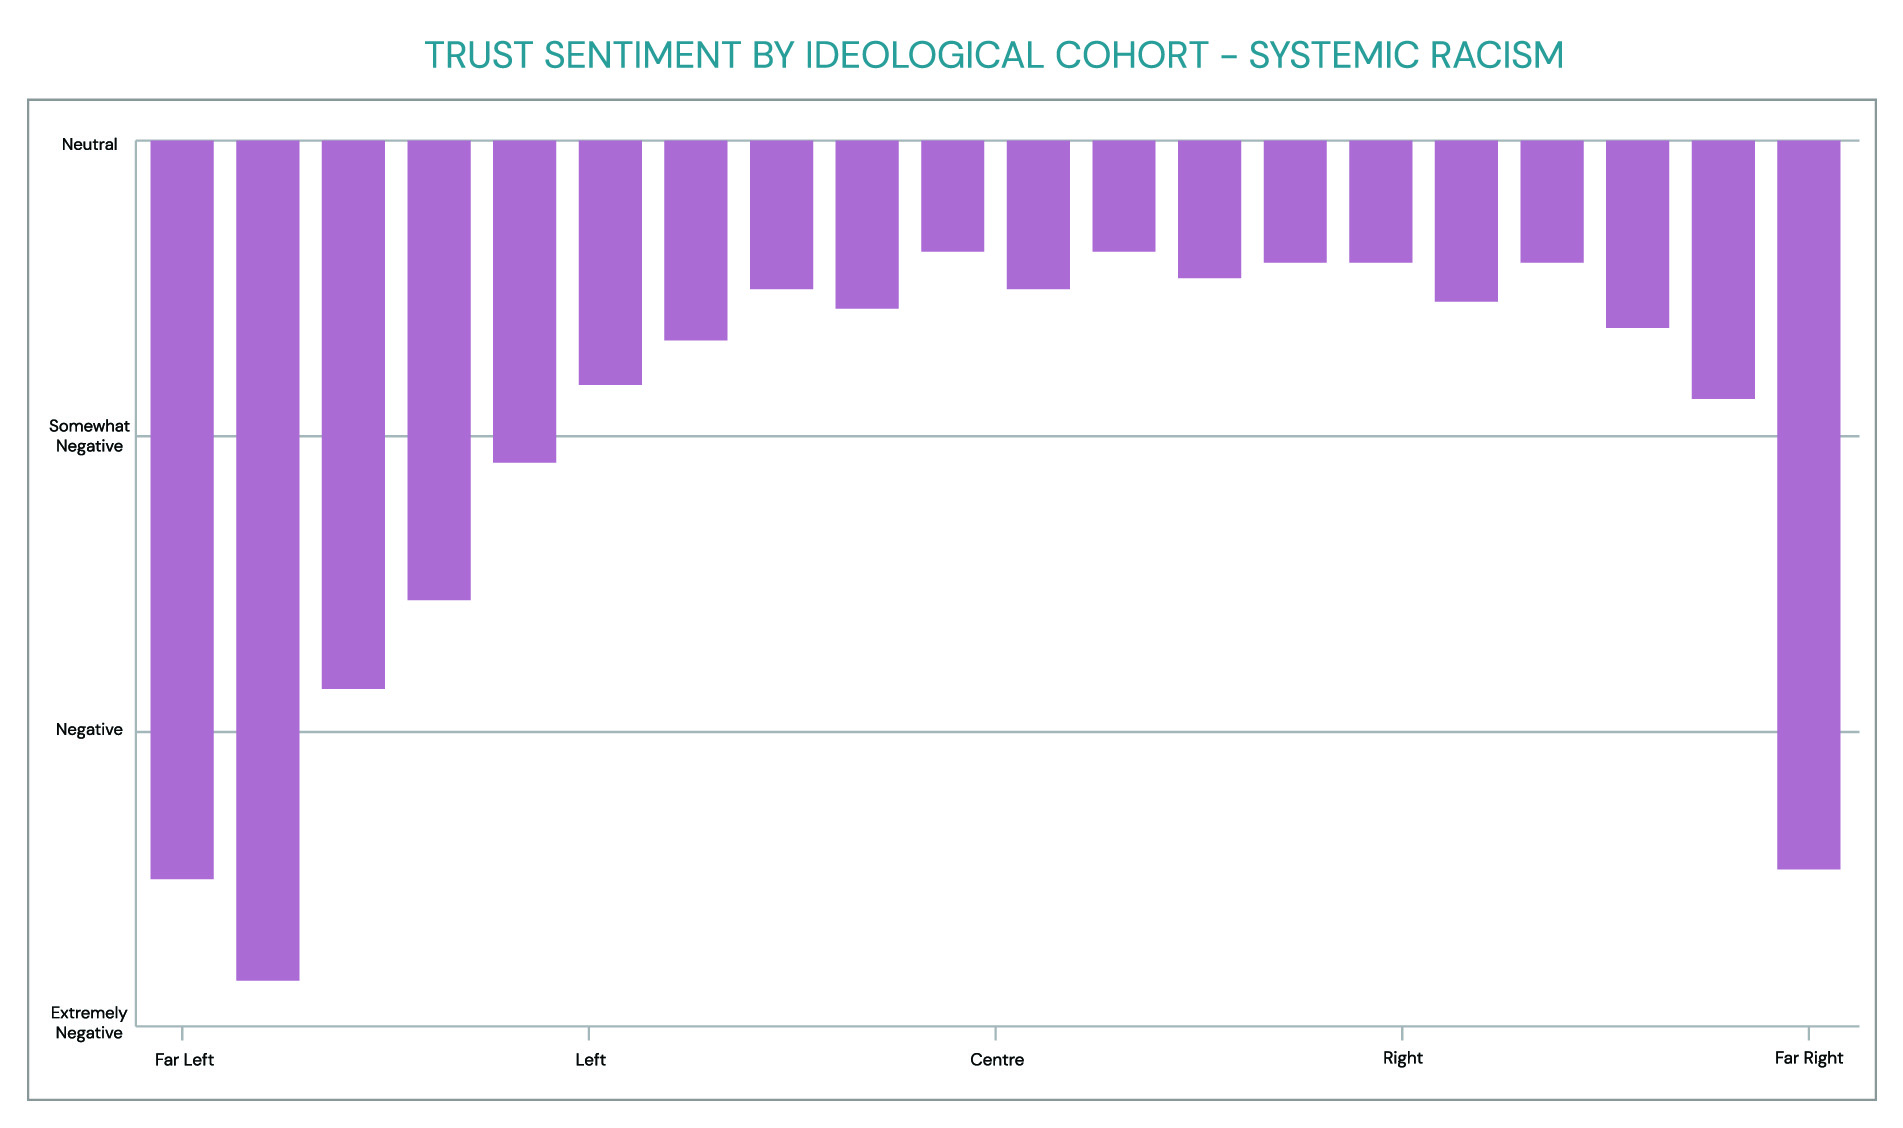 trust tracker: systemic racism